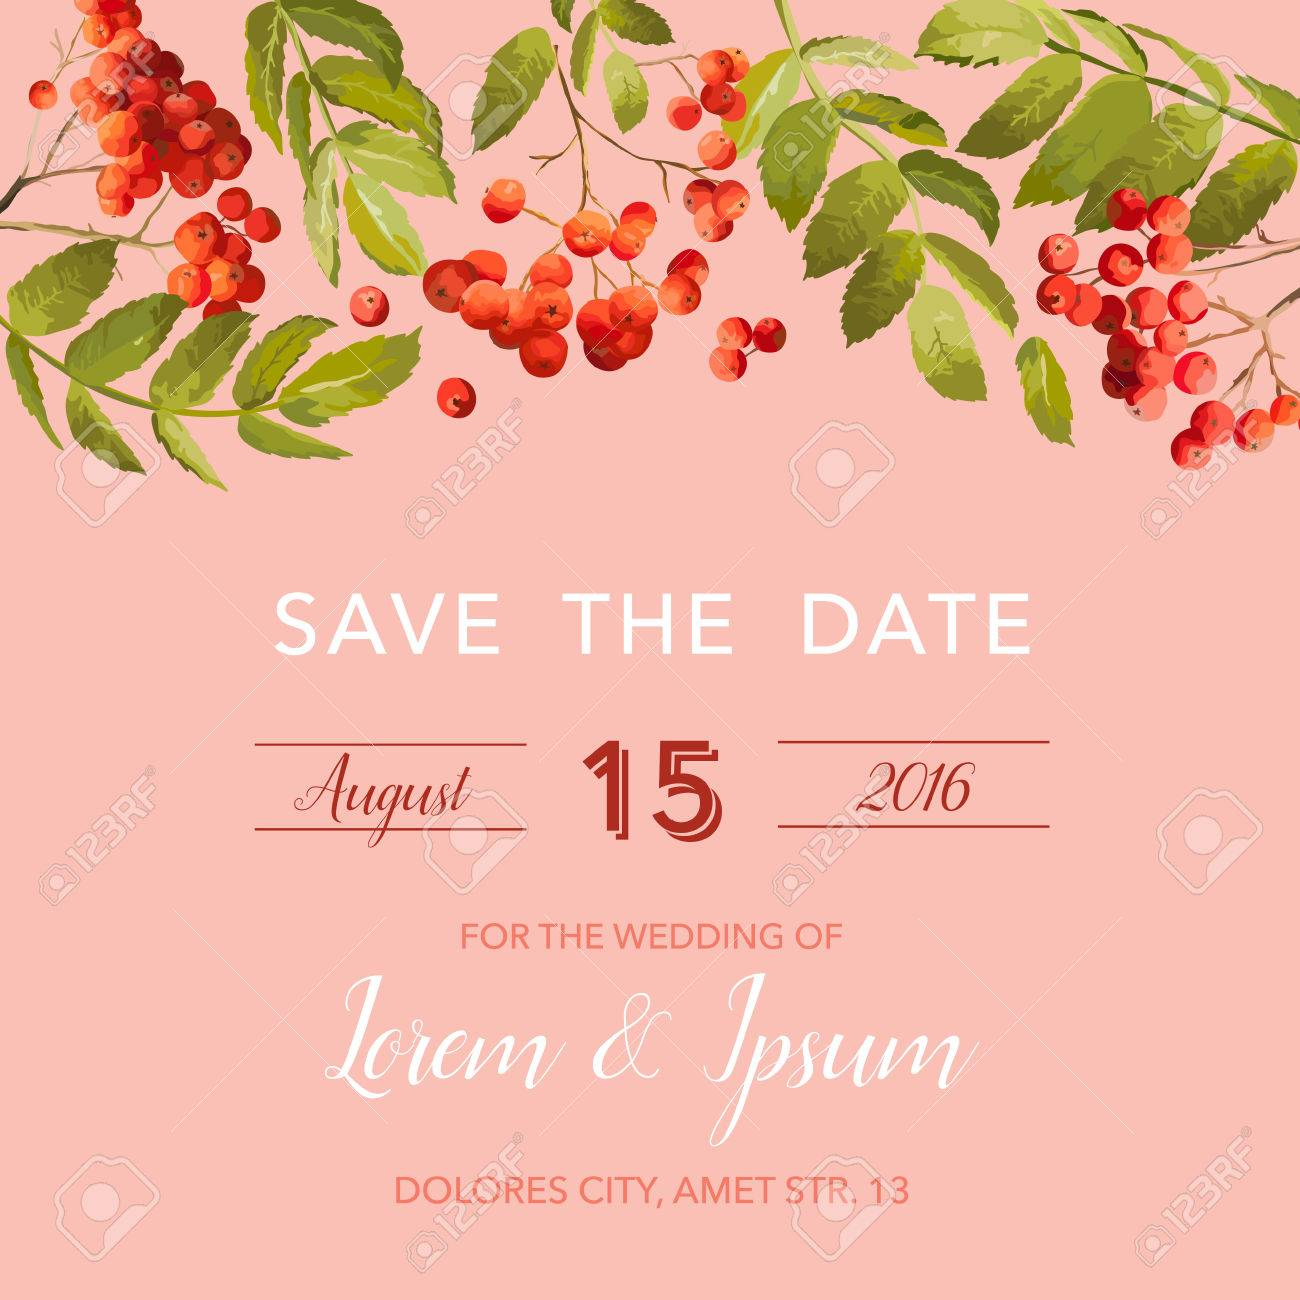 wedding invitation template floral save the date card with rowan